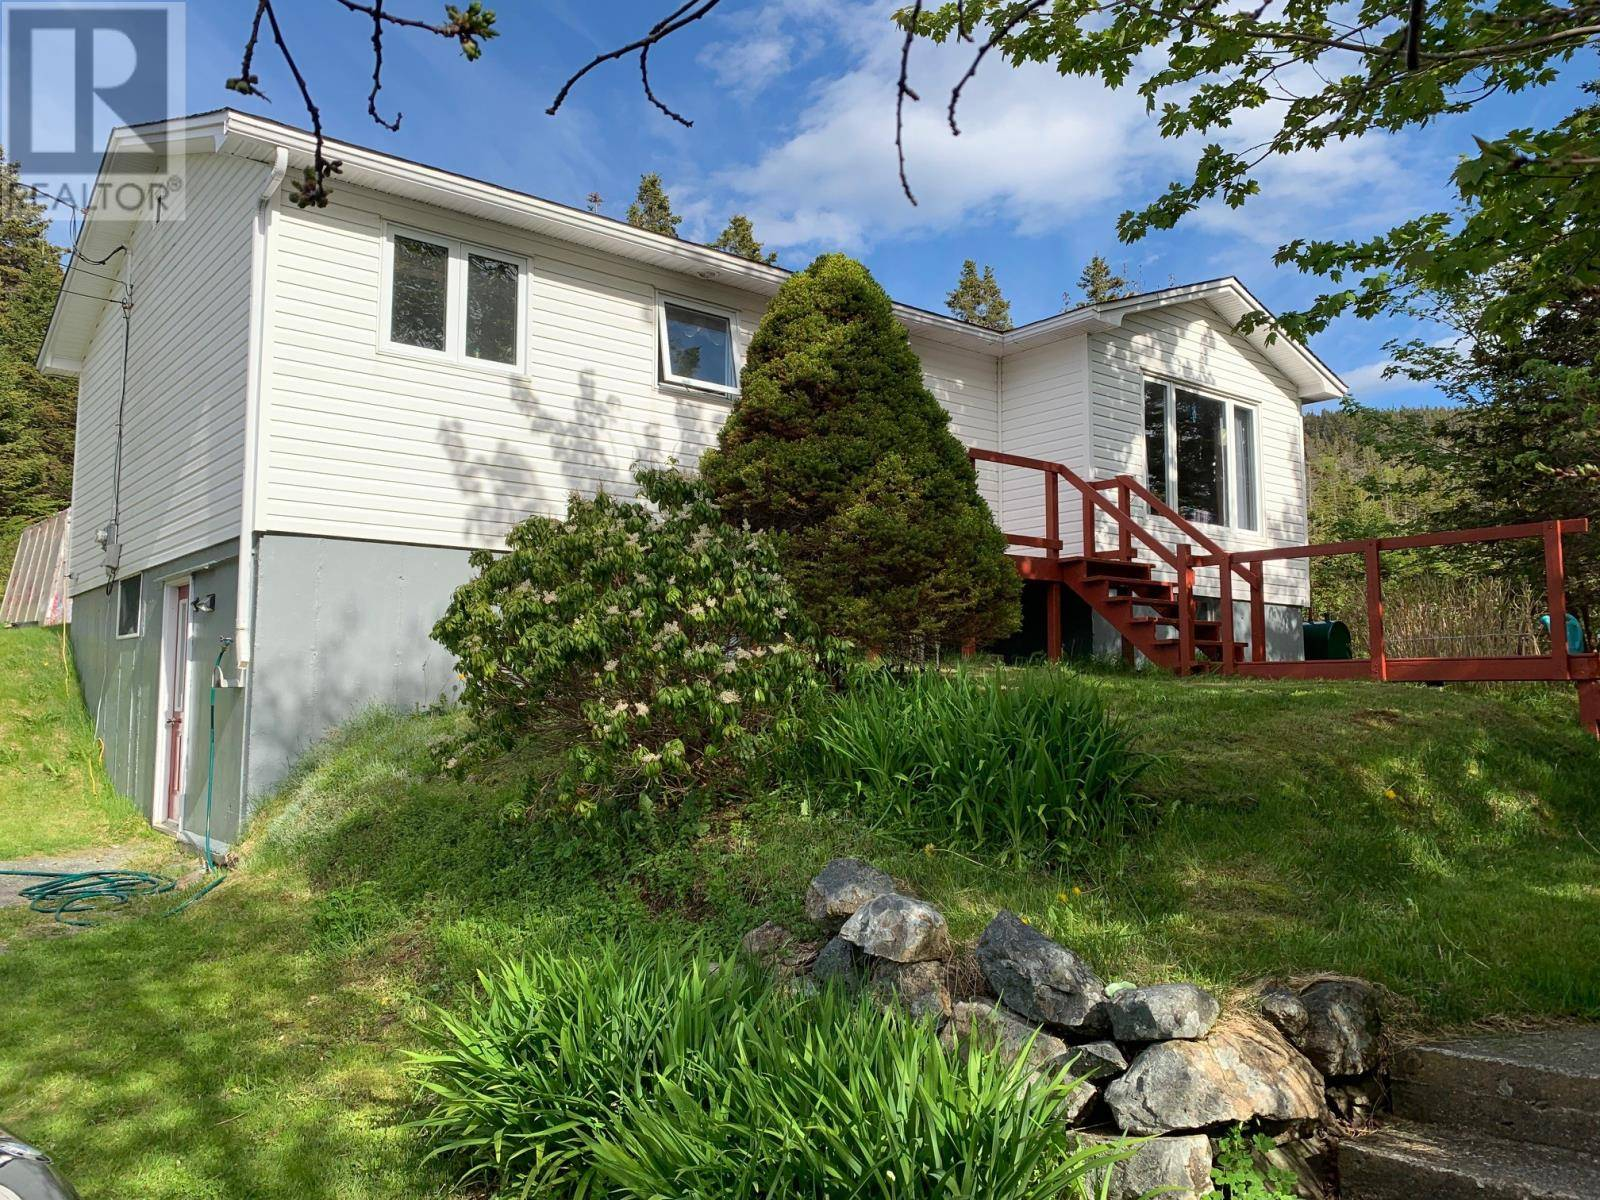 Home for sale at 123 Beachy Cove Rd Portugal Cove-st. Philip's Newfoundland - MLS: 1198073